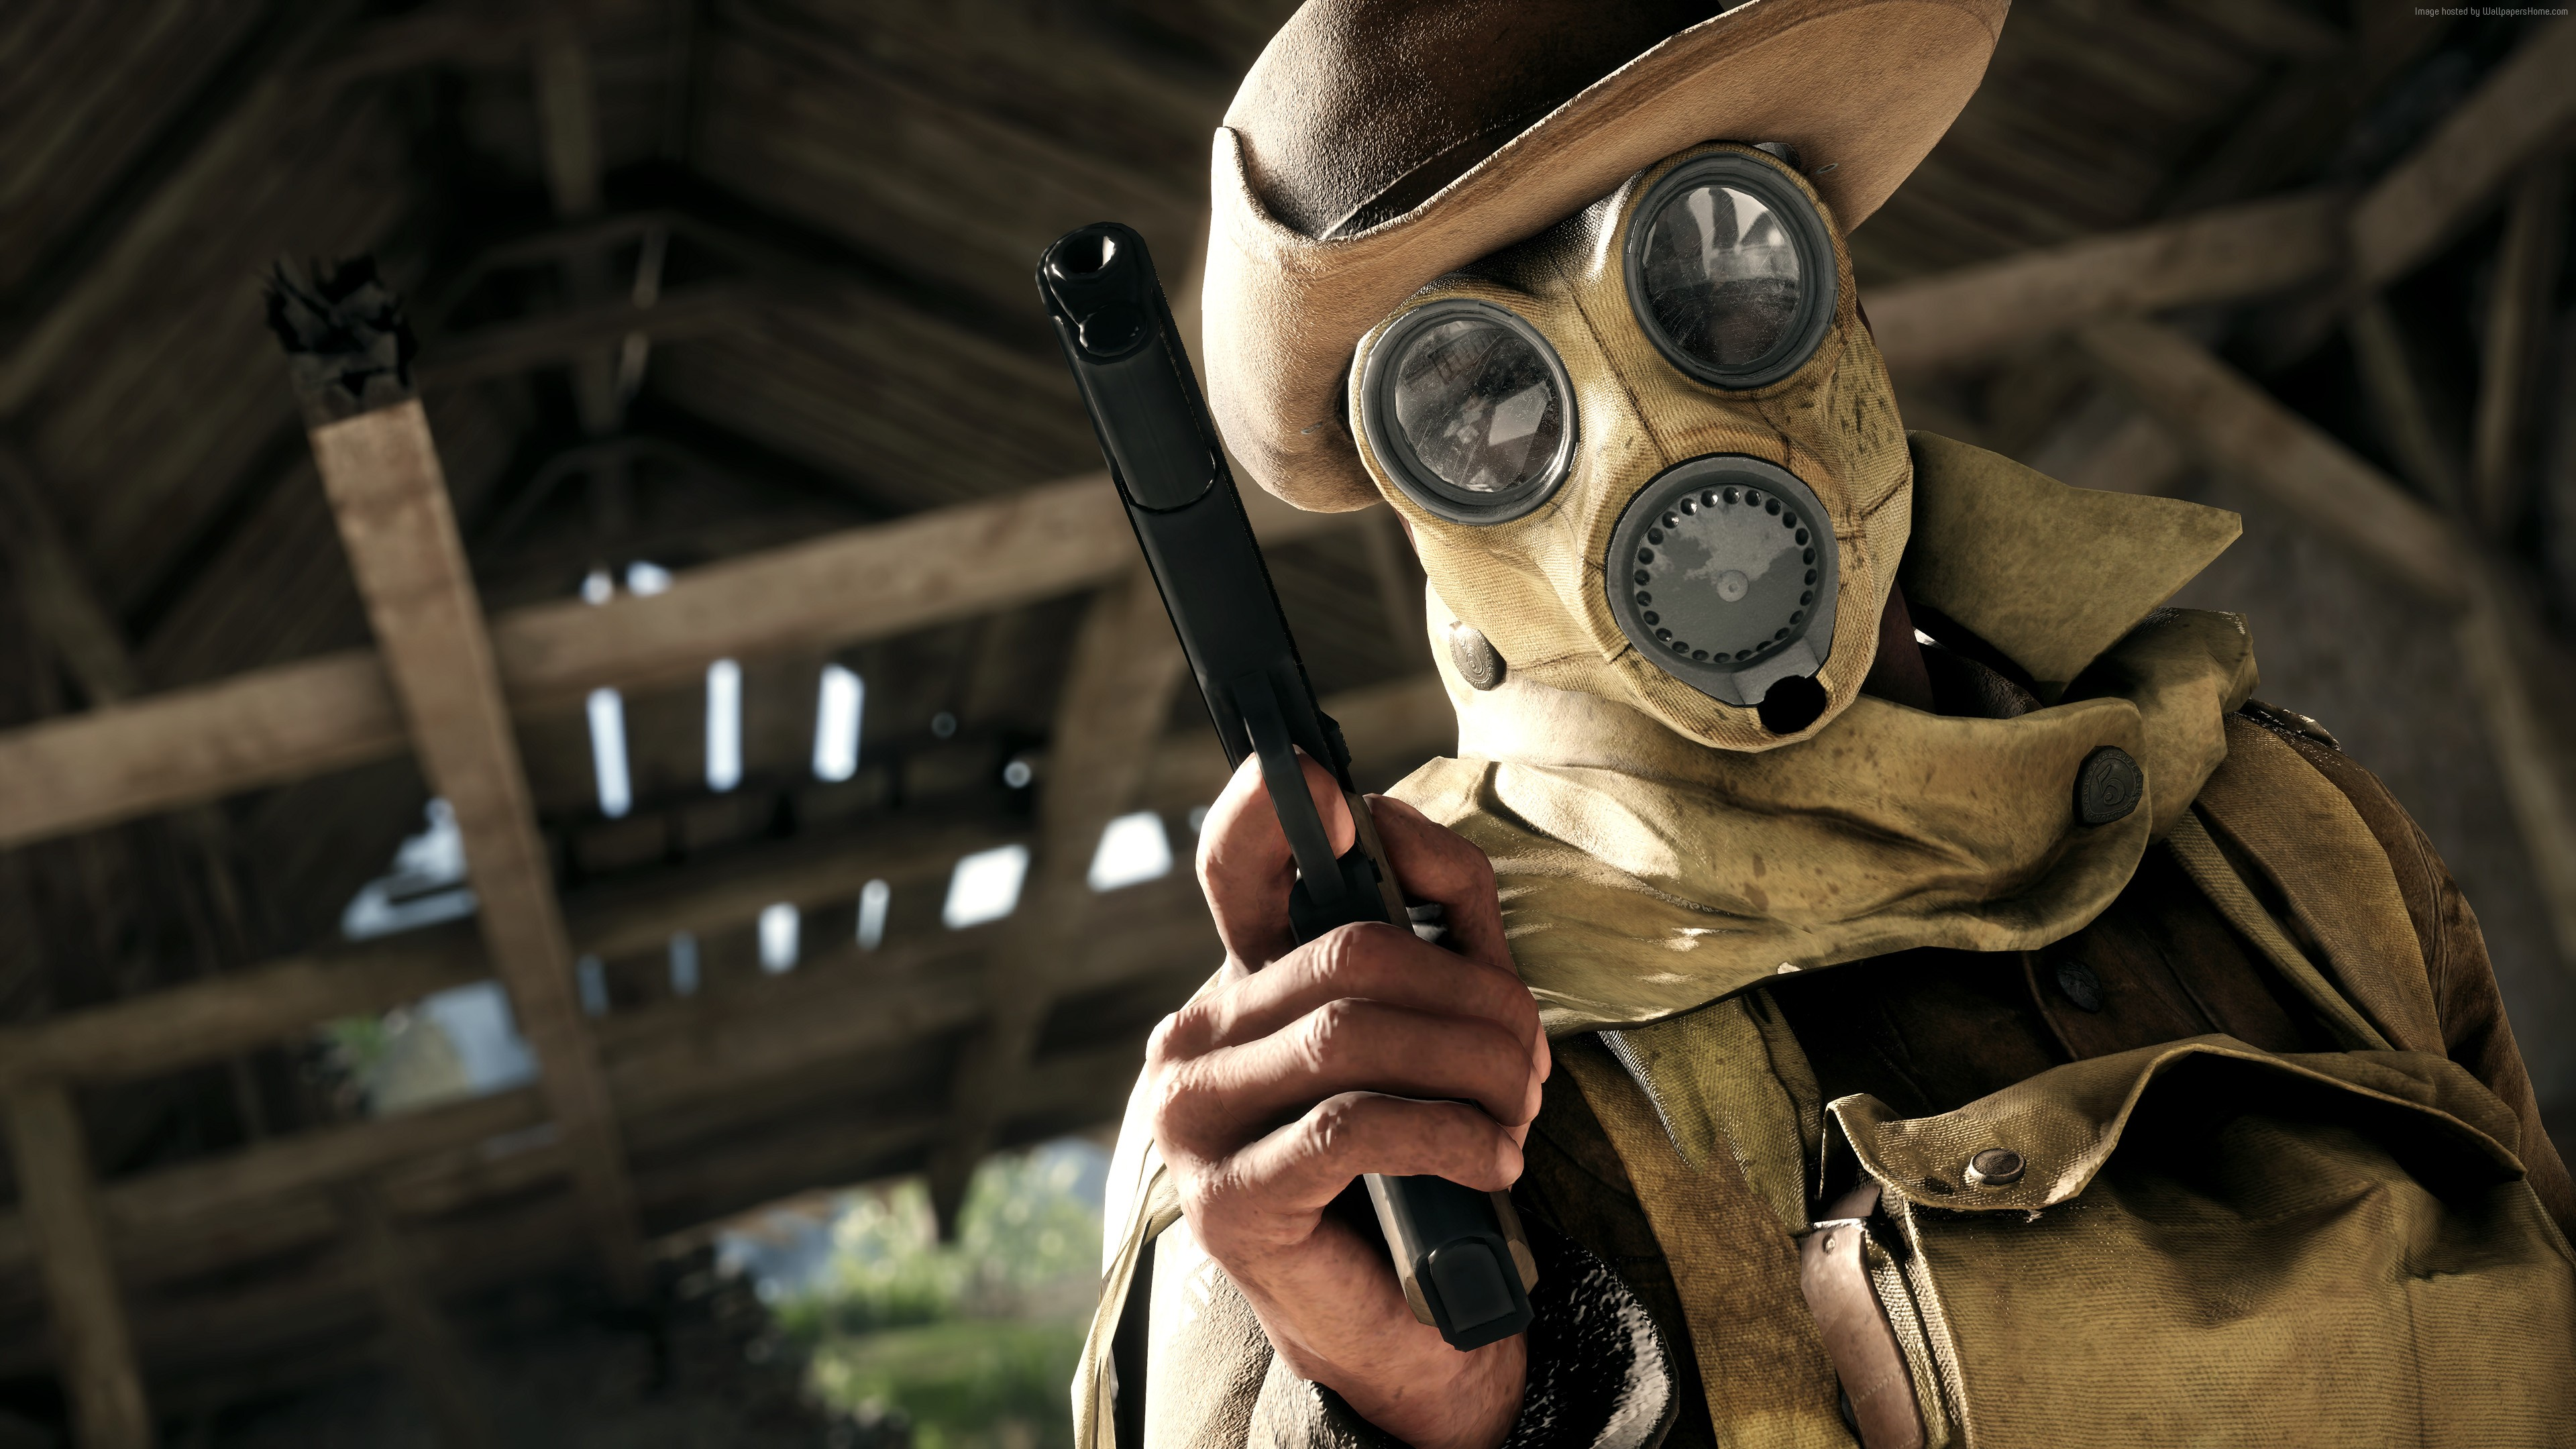 Pubg Gas Mask Guy Hd Games 4k Wallpapers Images: Battlefield 1 Game HD, HD Games, 4k Wallpapers, Images